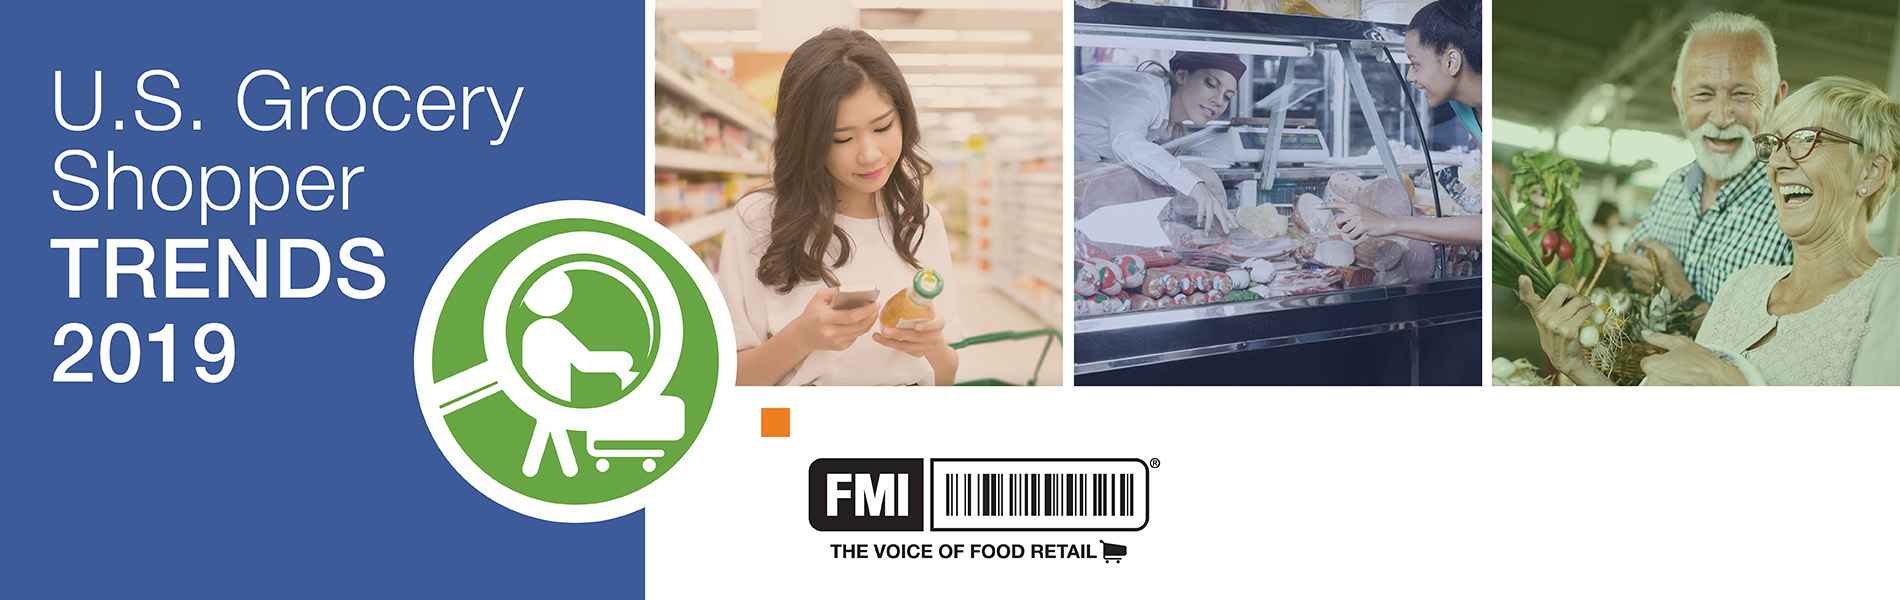 Grocery Shopper Trends 2019 graphic with a collage of grocery shoppers.